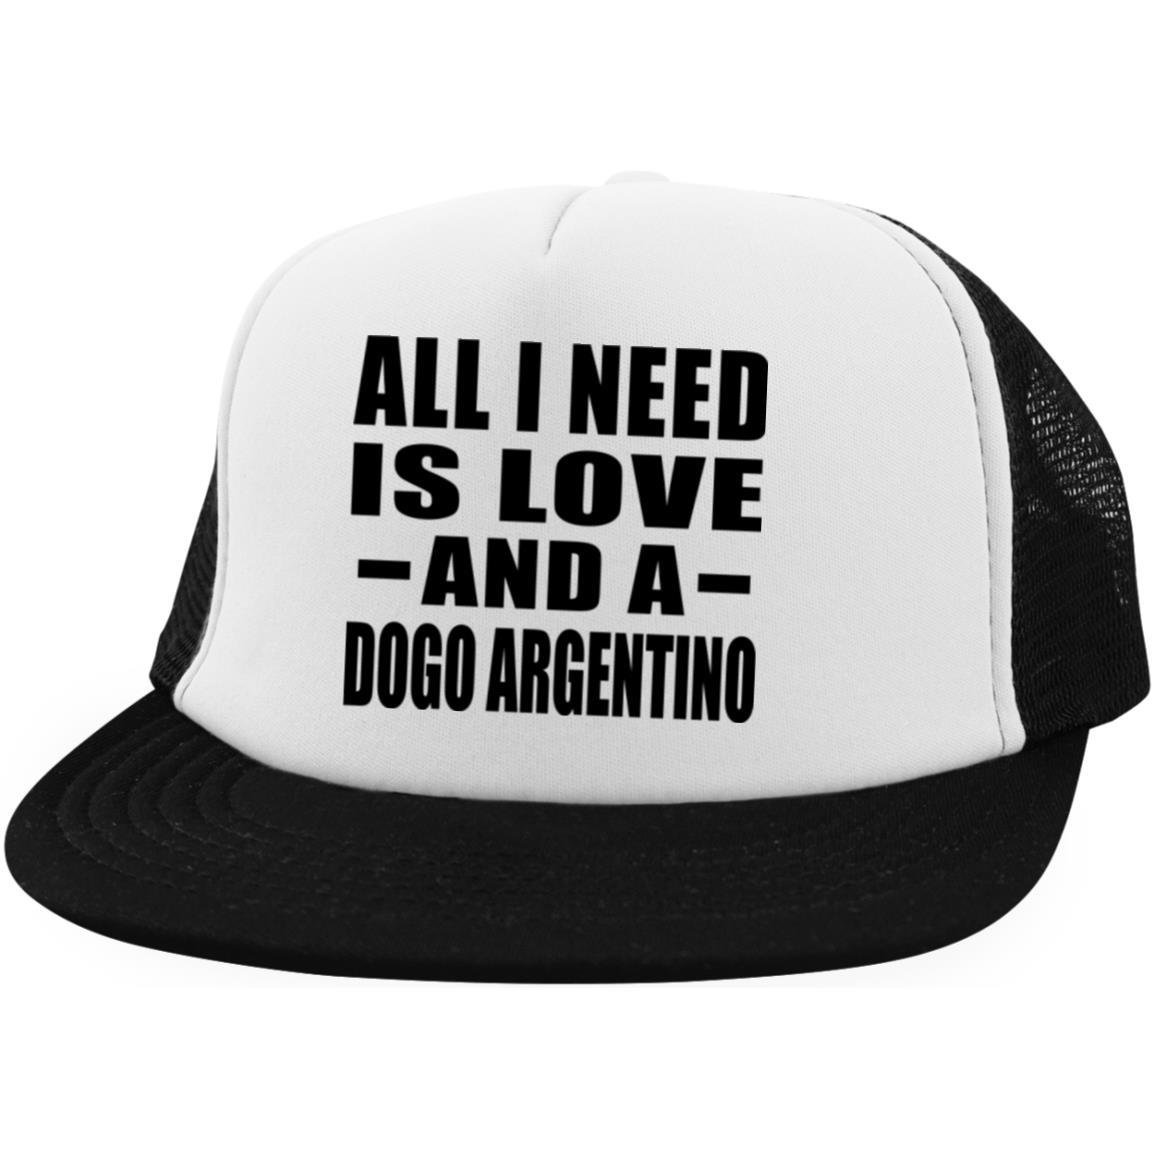 All I Need Is Love and A Dogo Argentino - Trucker Hat Visera ...